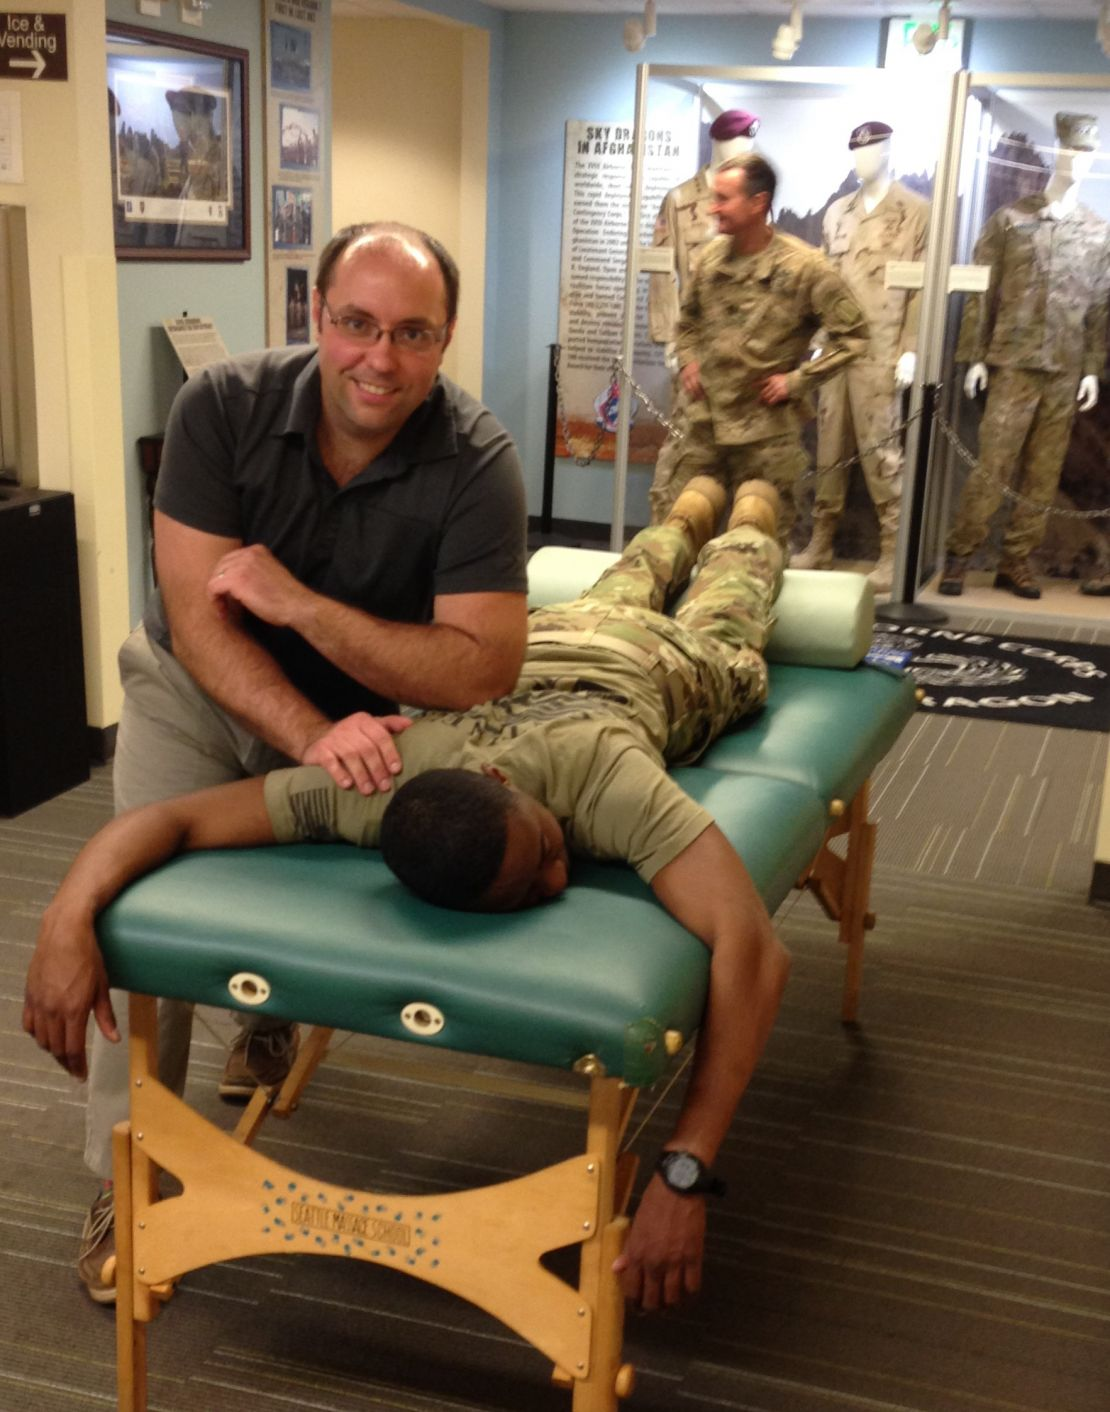 Rolfing, Rolf, massage, bodywork, rehab, physical therapy, practitioner, army, veteran owned, small business, Sanford, NC, health, pain, posture, biopsychosocial, alignment